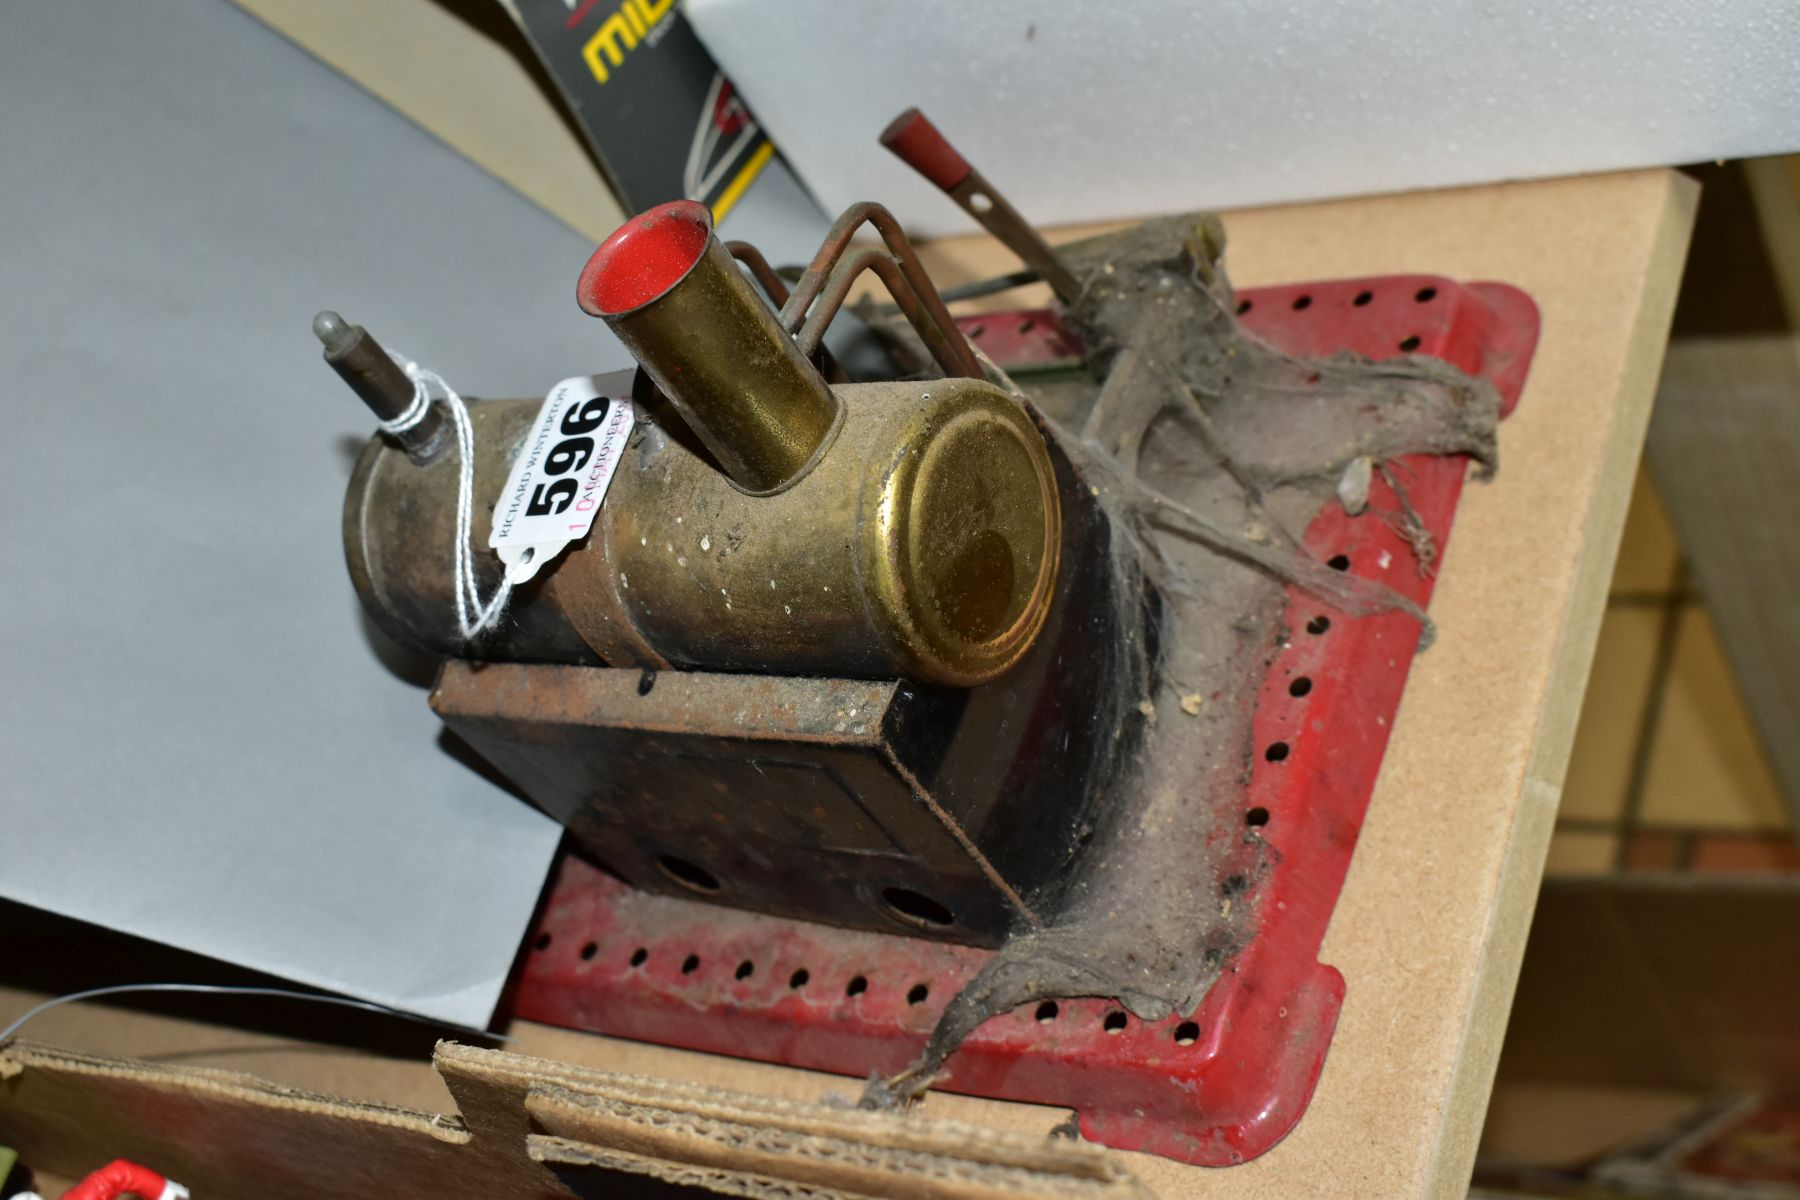 AN UNBOXED MAMOD LIVE STEAM ENGINE, No SE2, not tested, missing safety valve but has burner tray, - Image 6 of 6